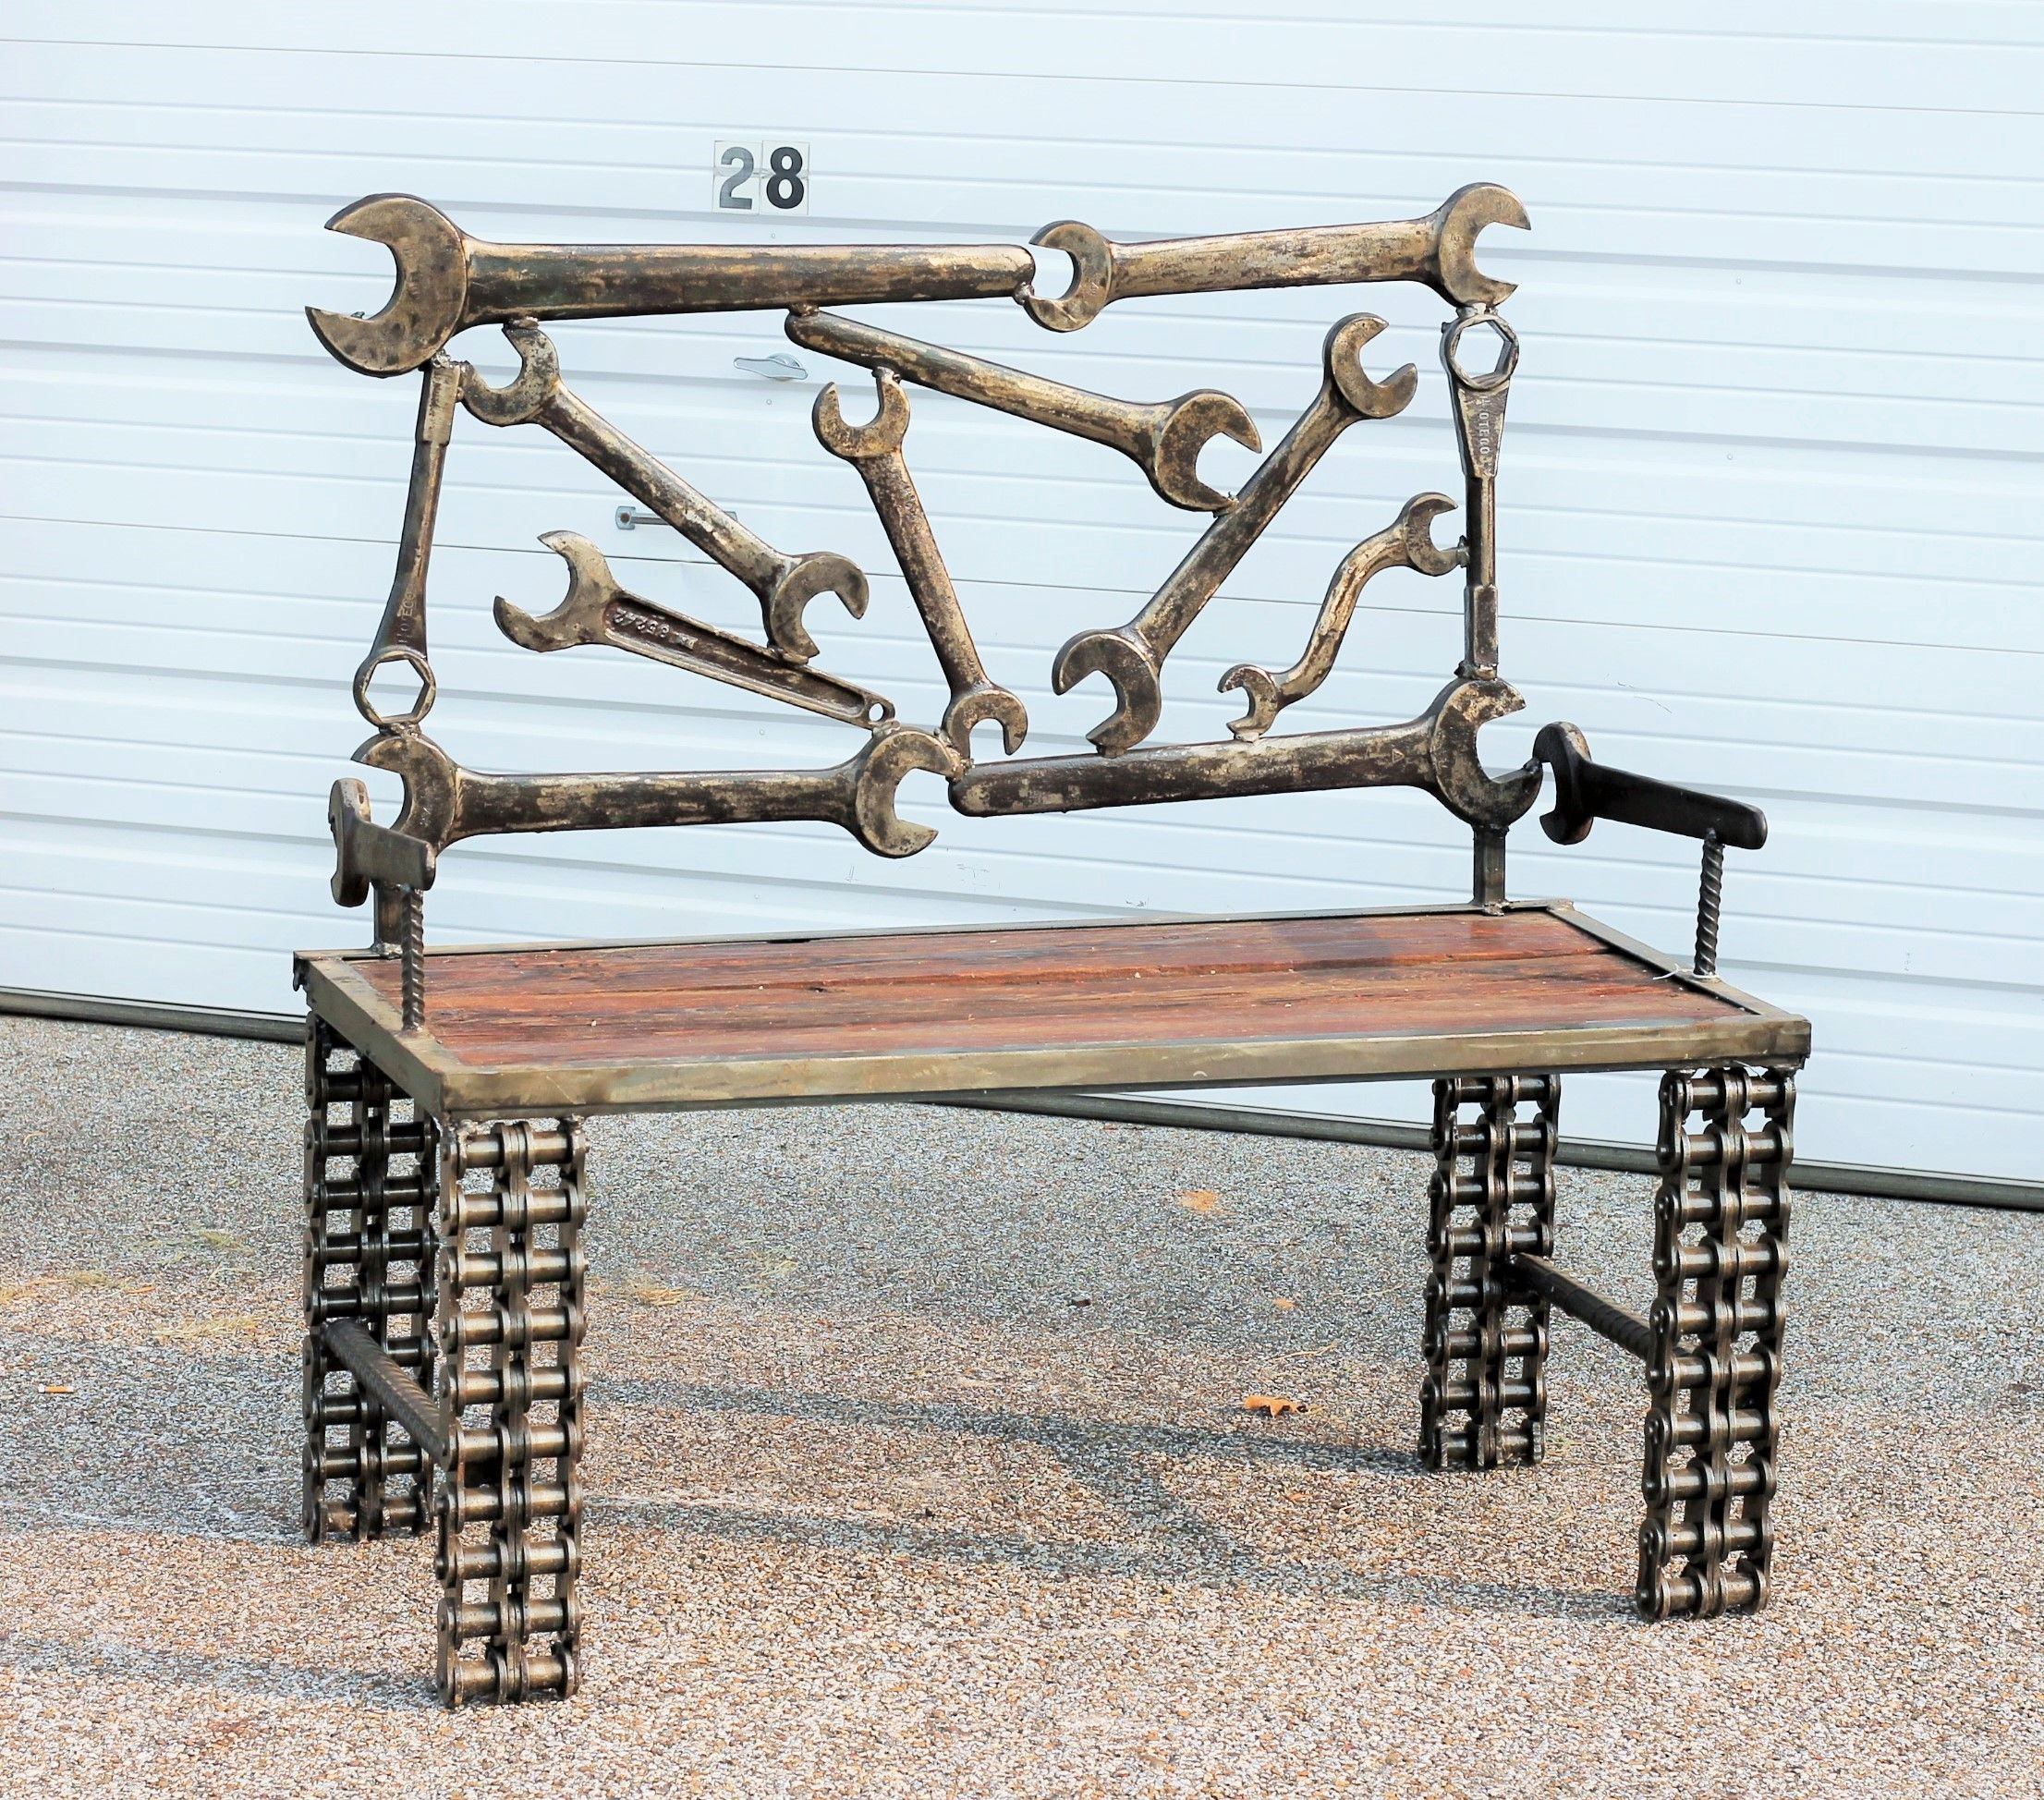 Scrap metal boom days oil field wrench garden bench for Repurposed metal furniture